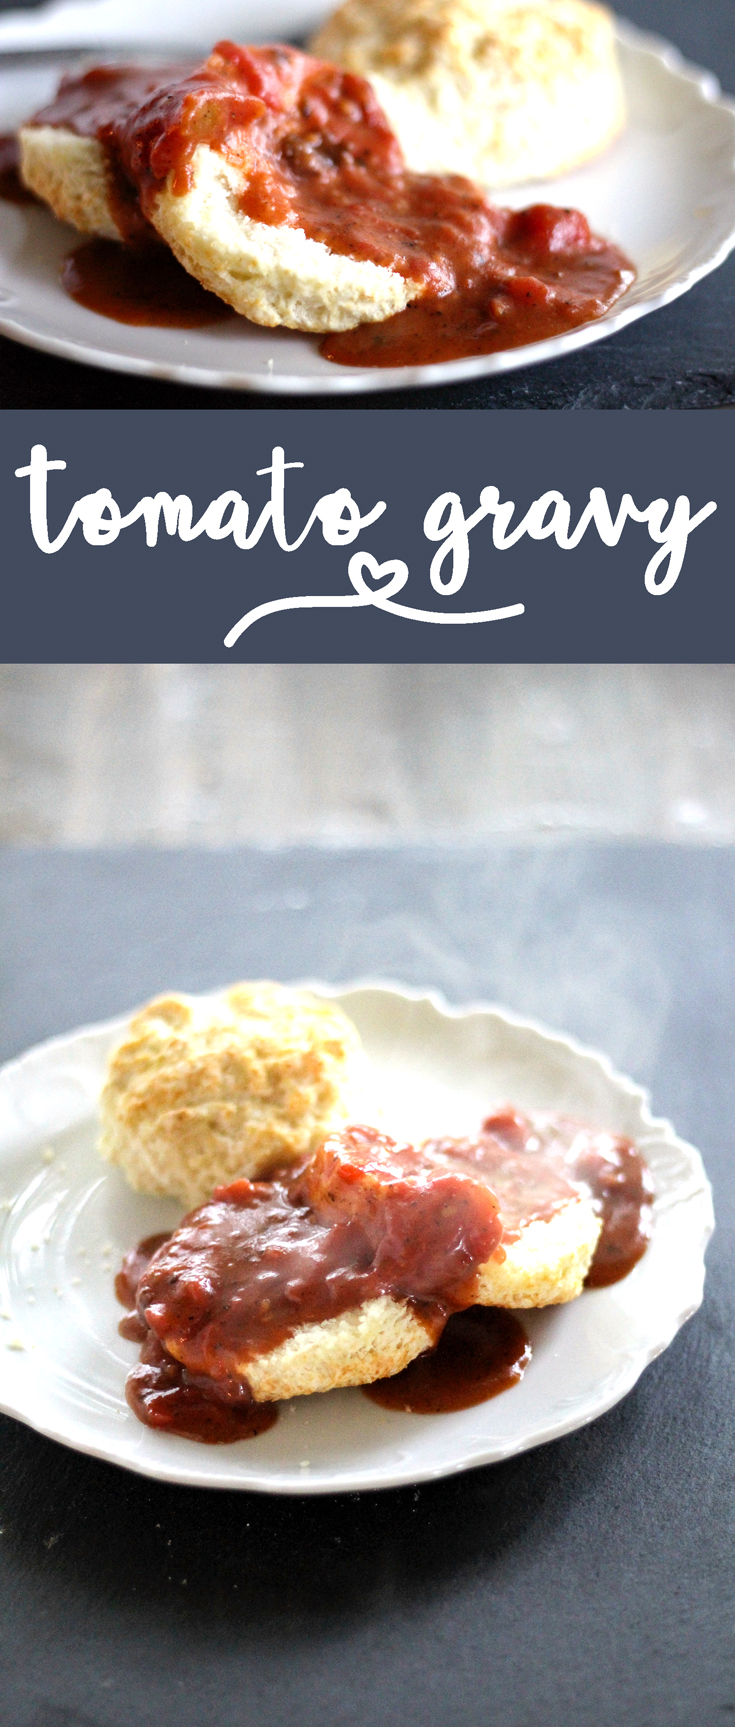 It doesn't matter who you are or where you are from, Tomato Gravy is good Southern food. #tomatogravy #gravyrecipe #southerncookingIf you have never had tomato gravy before, you have to try my father in law Dale's recipe.  This delightfully different gravy recipe is a flavorful and filling.#tomatogravy #Southernrecipe